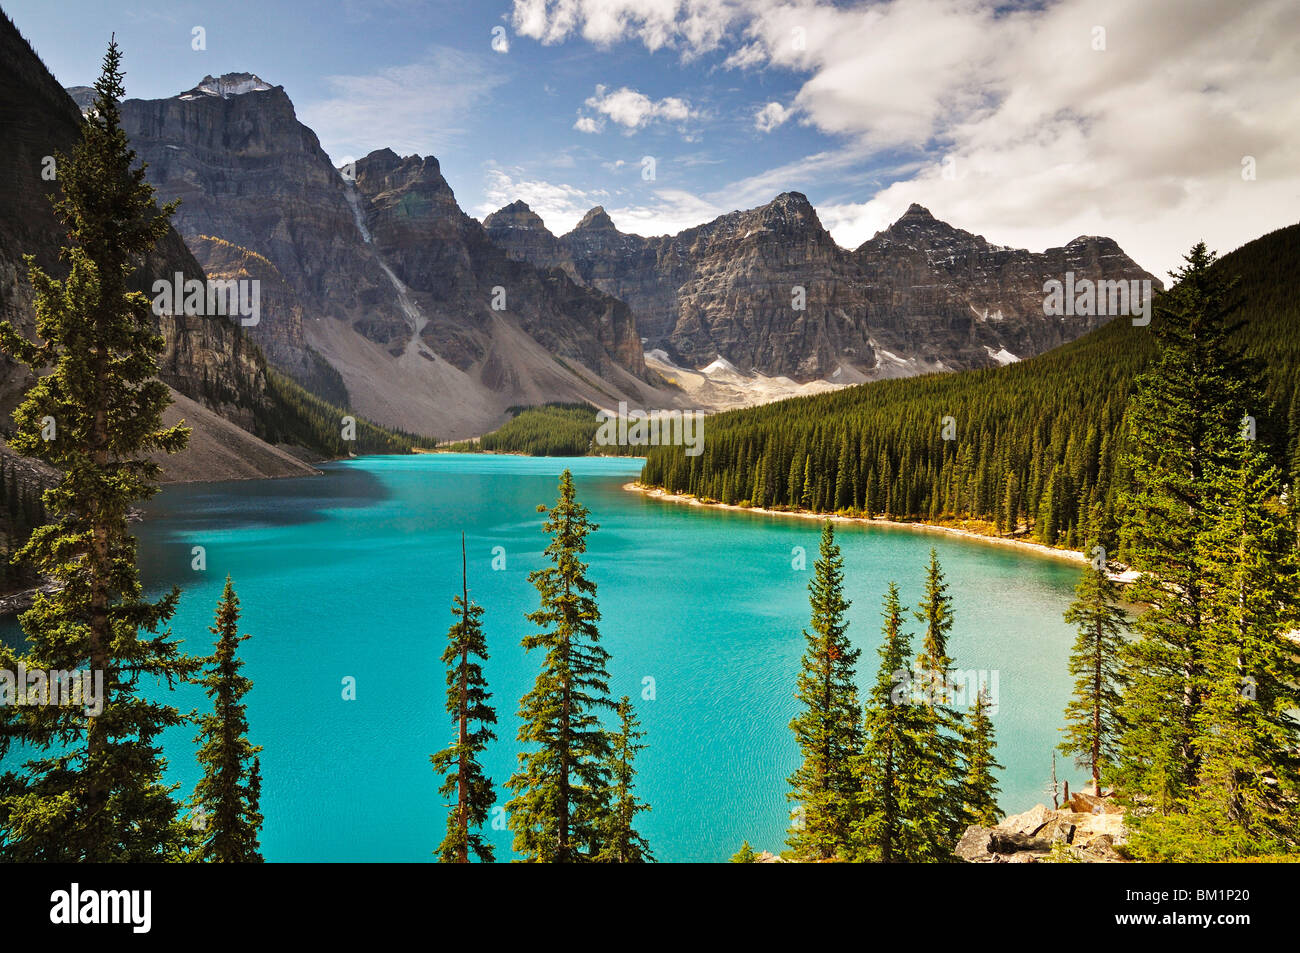 Moraine Lake, Banff National Park, UNESCO World Heritage Site, Rocky Mountains, Alberta, Canada, North America - Stock Image